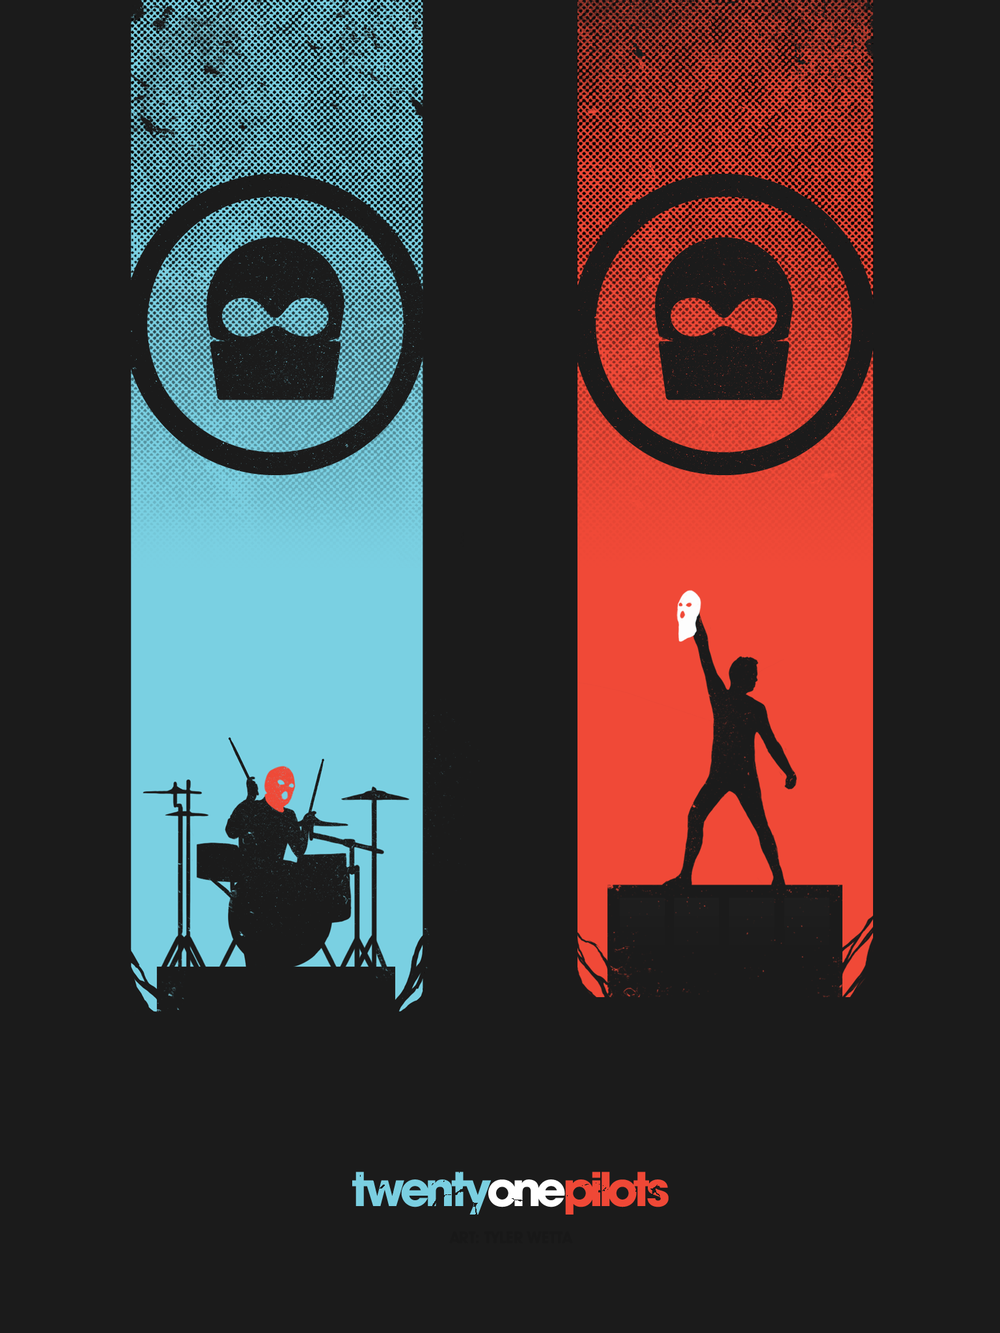 Kitchen Sink Twenty One Pilots Wallpaper Twenty One Pilots Informative Speec.